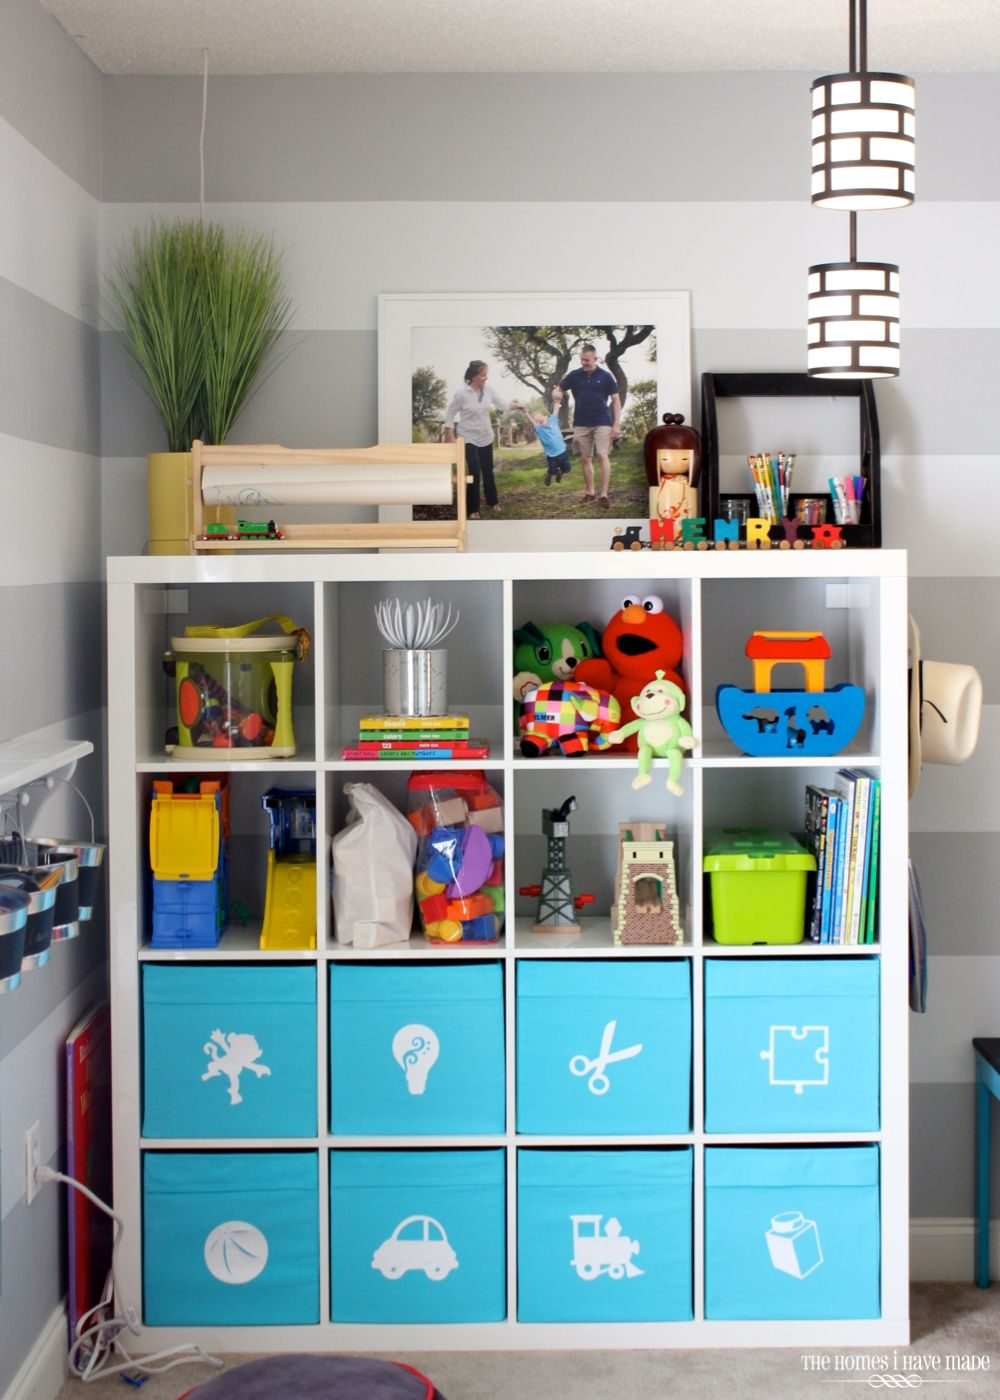 Ikea Cubes Different Ways To Use Style Ikea S Versatile Expedit Shelf